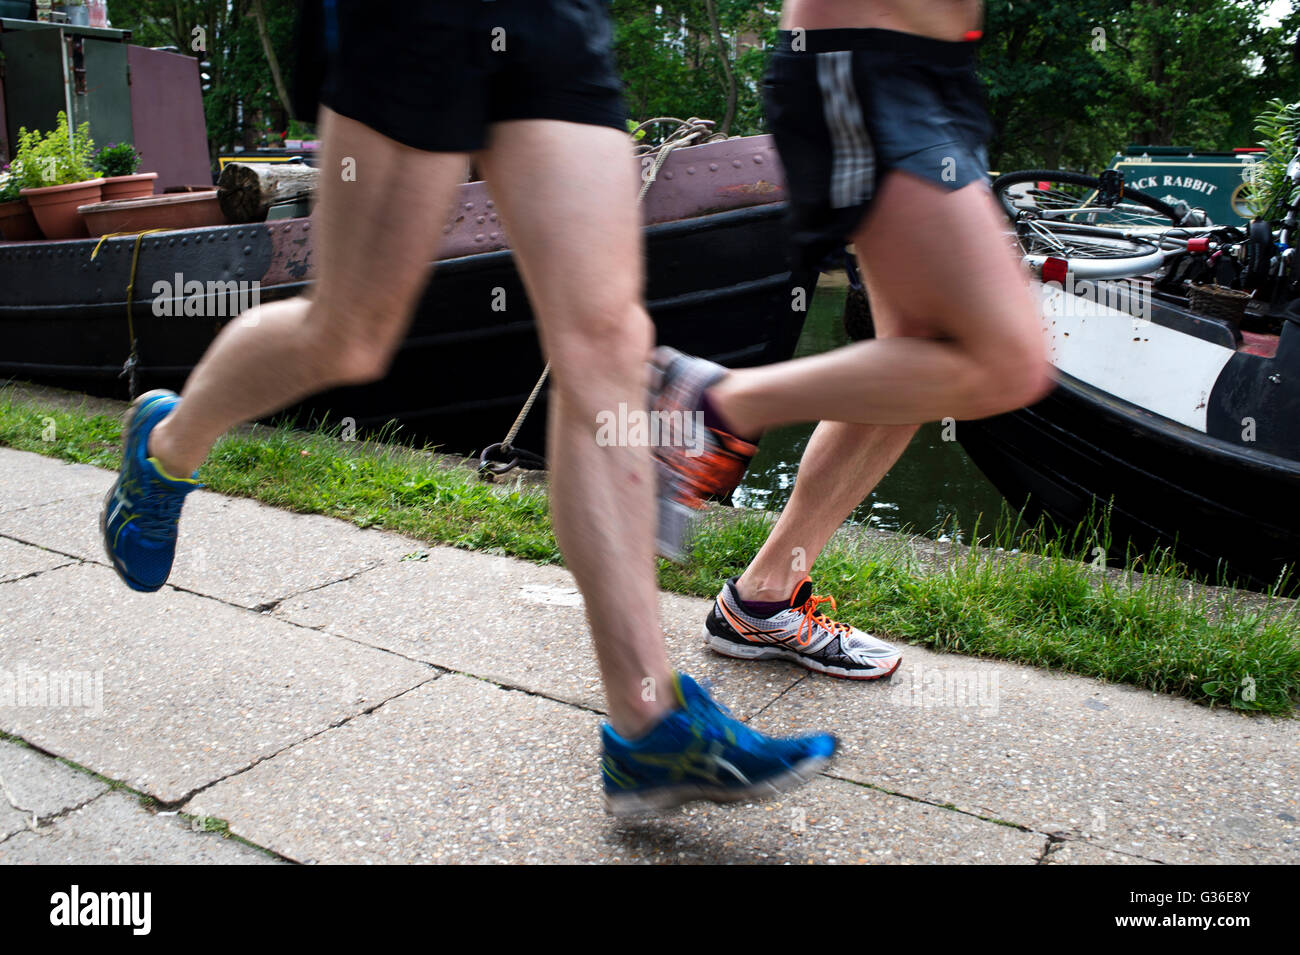 Hackney. Regents Canal. Two runners on the towpath. - Stock Image